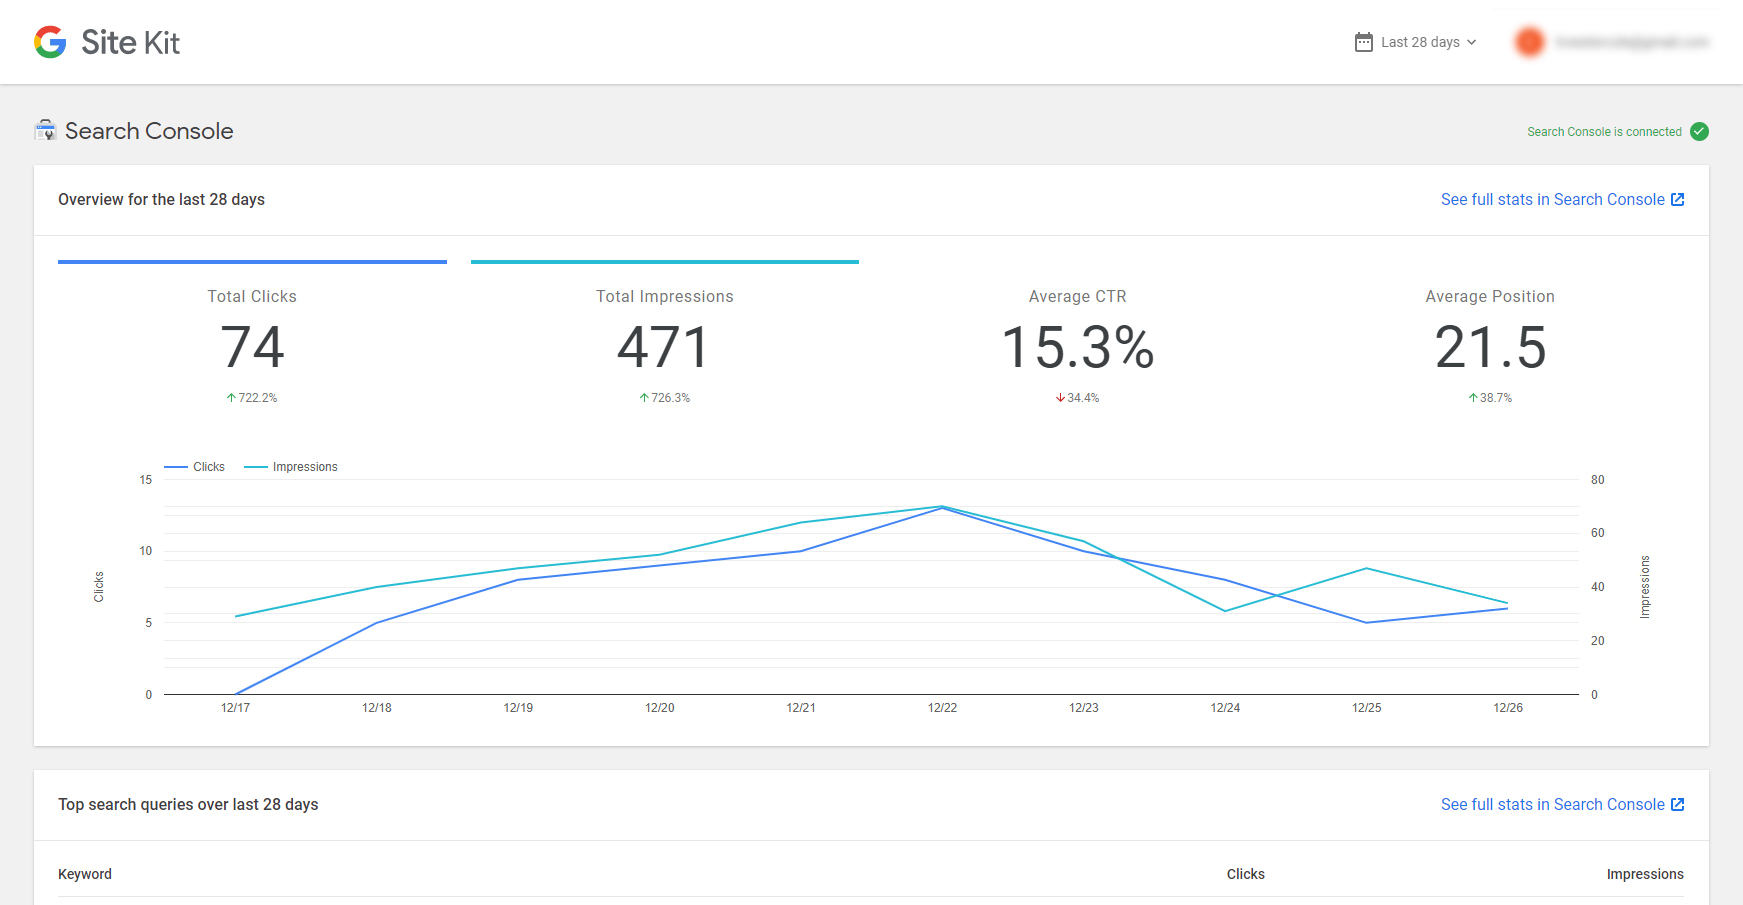 Google Site Kit Search Console